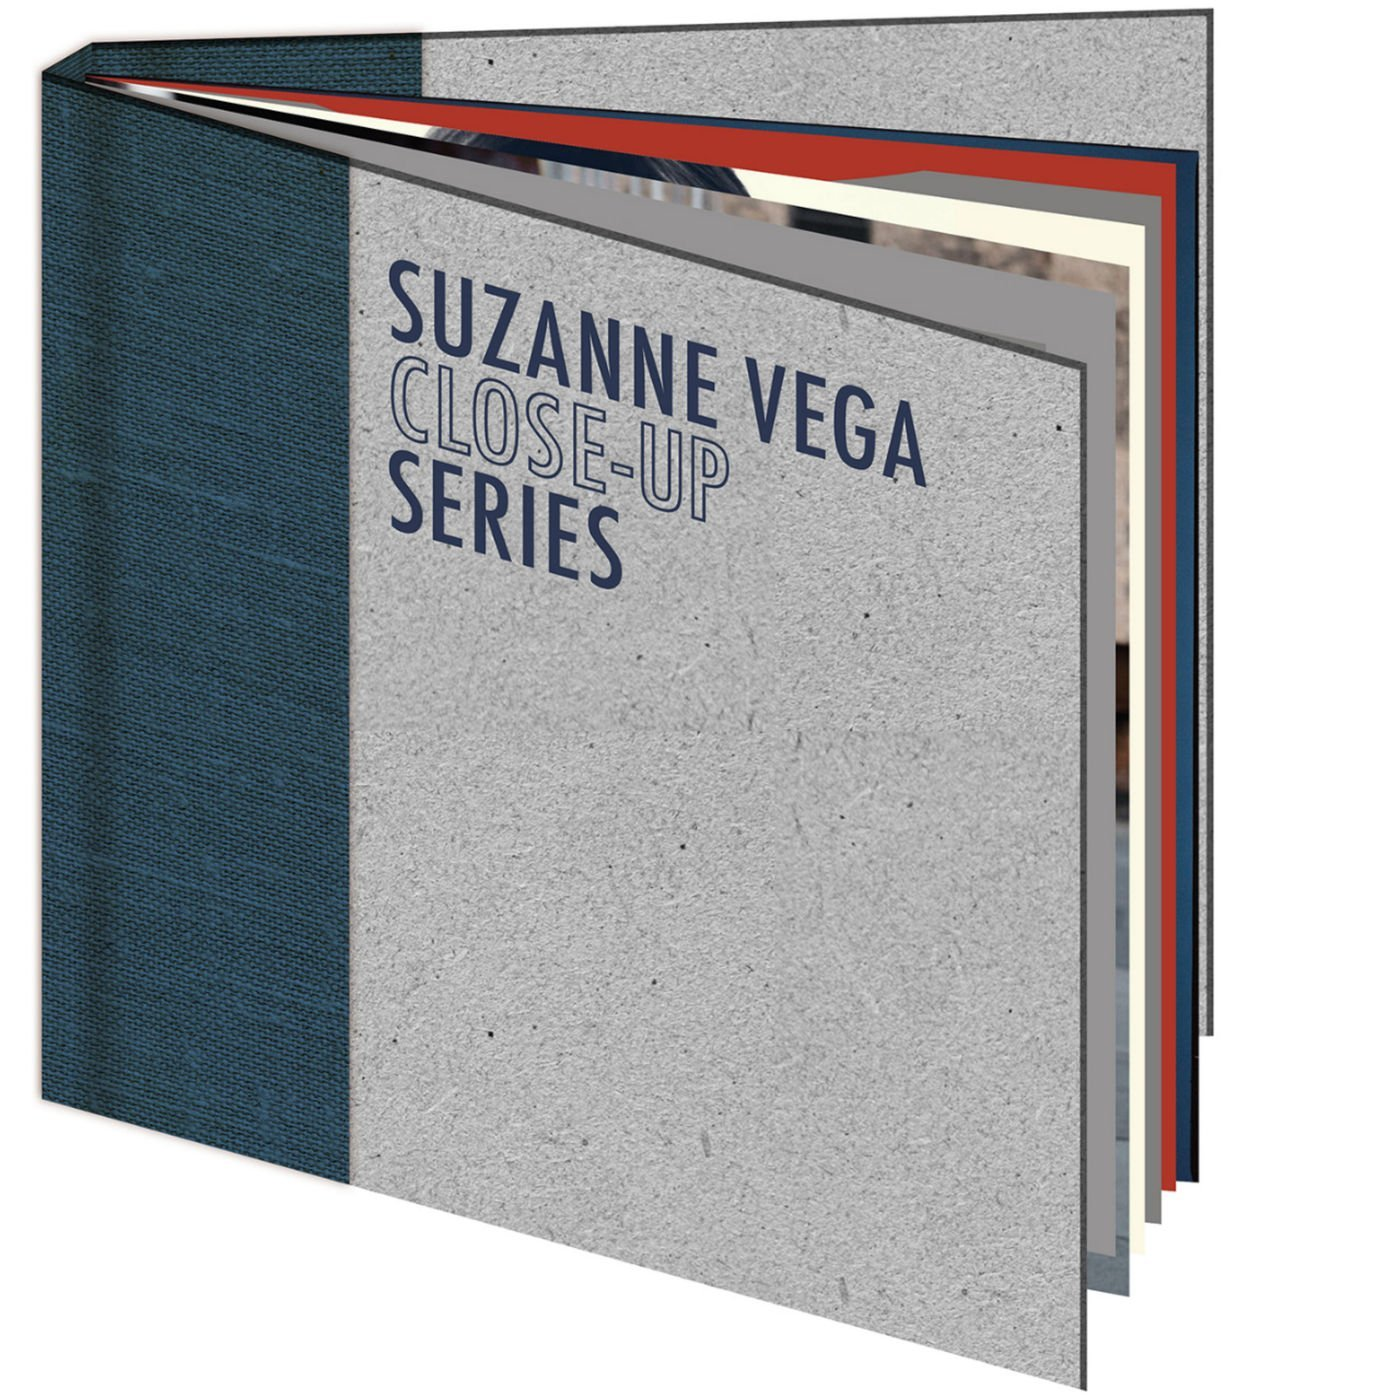 Suzanne Vega / Close-Up series 6-disc deluxe hardcover book